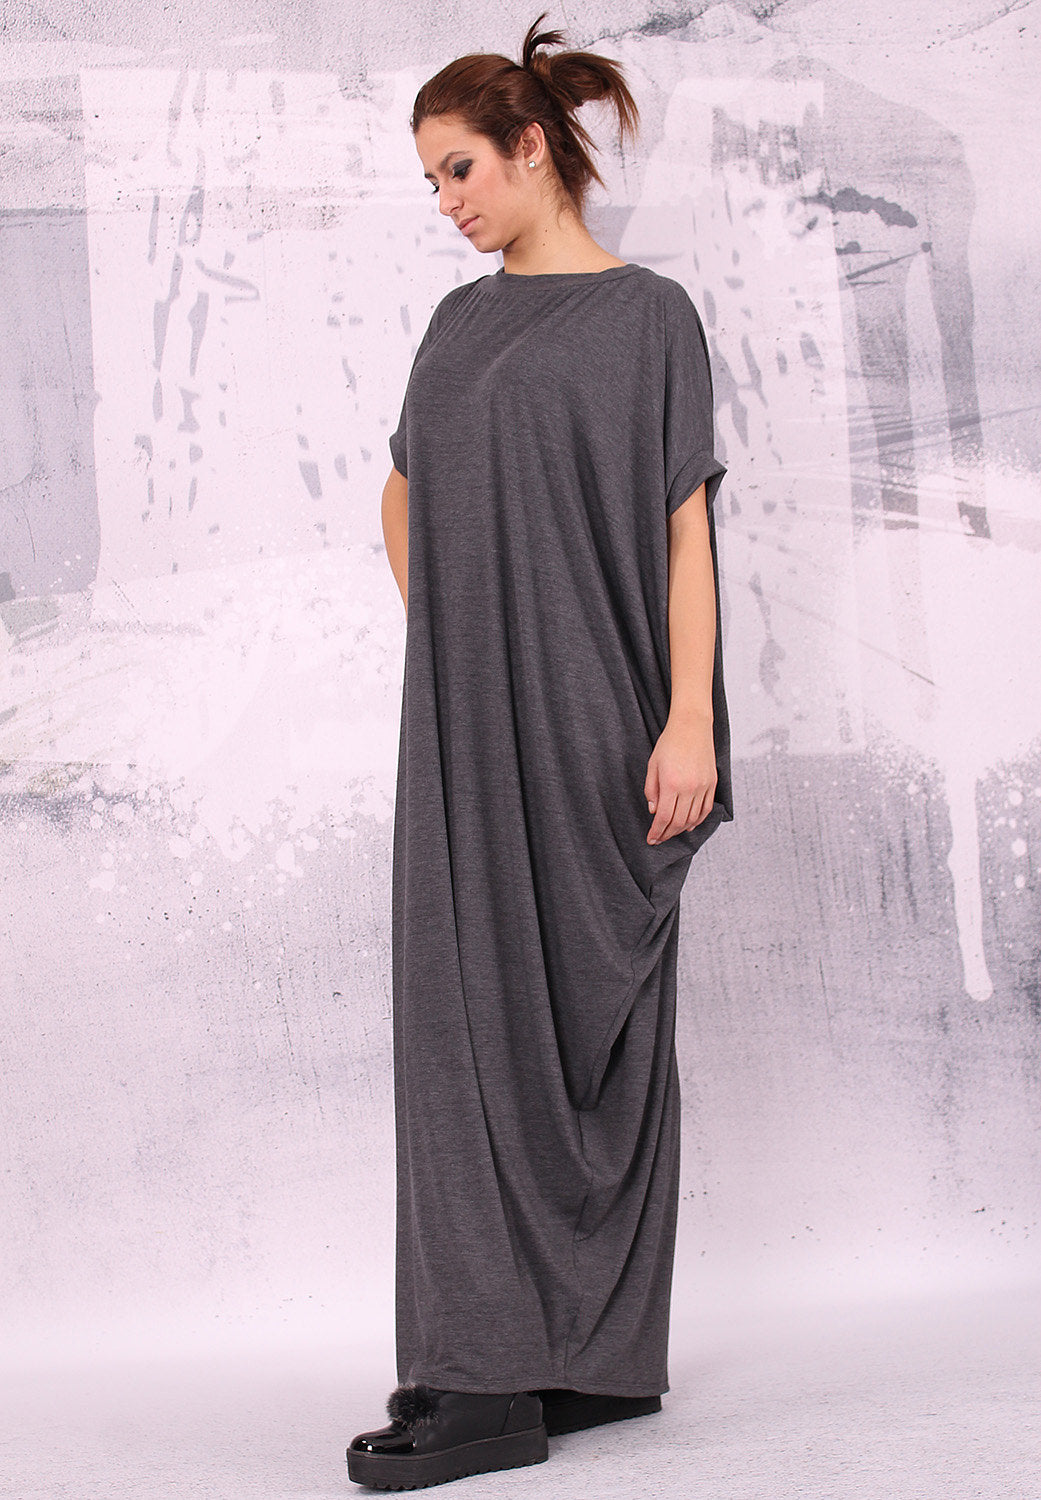 Gray dress/ extravagant dress/ loose long dress/ asymmetrical dress/ plus size tunic, oversize maxi dress/ loose dress - UM-012-VL